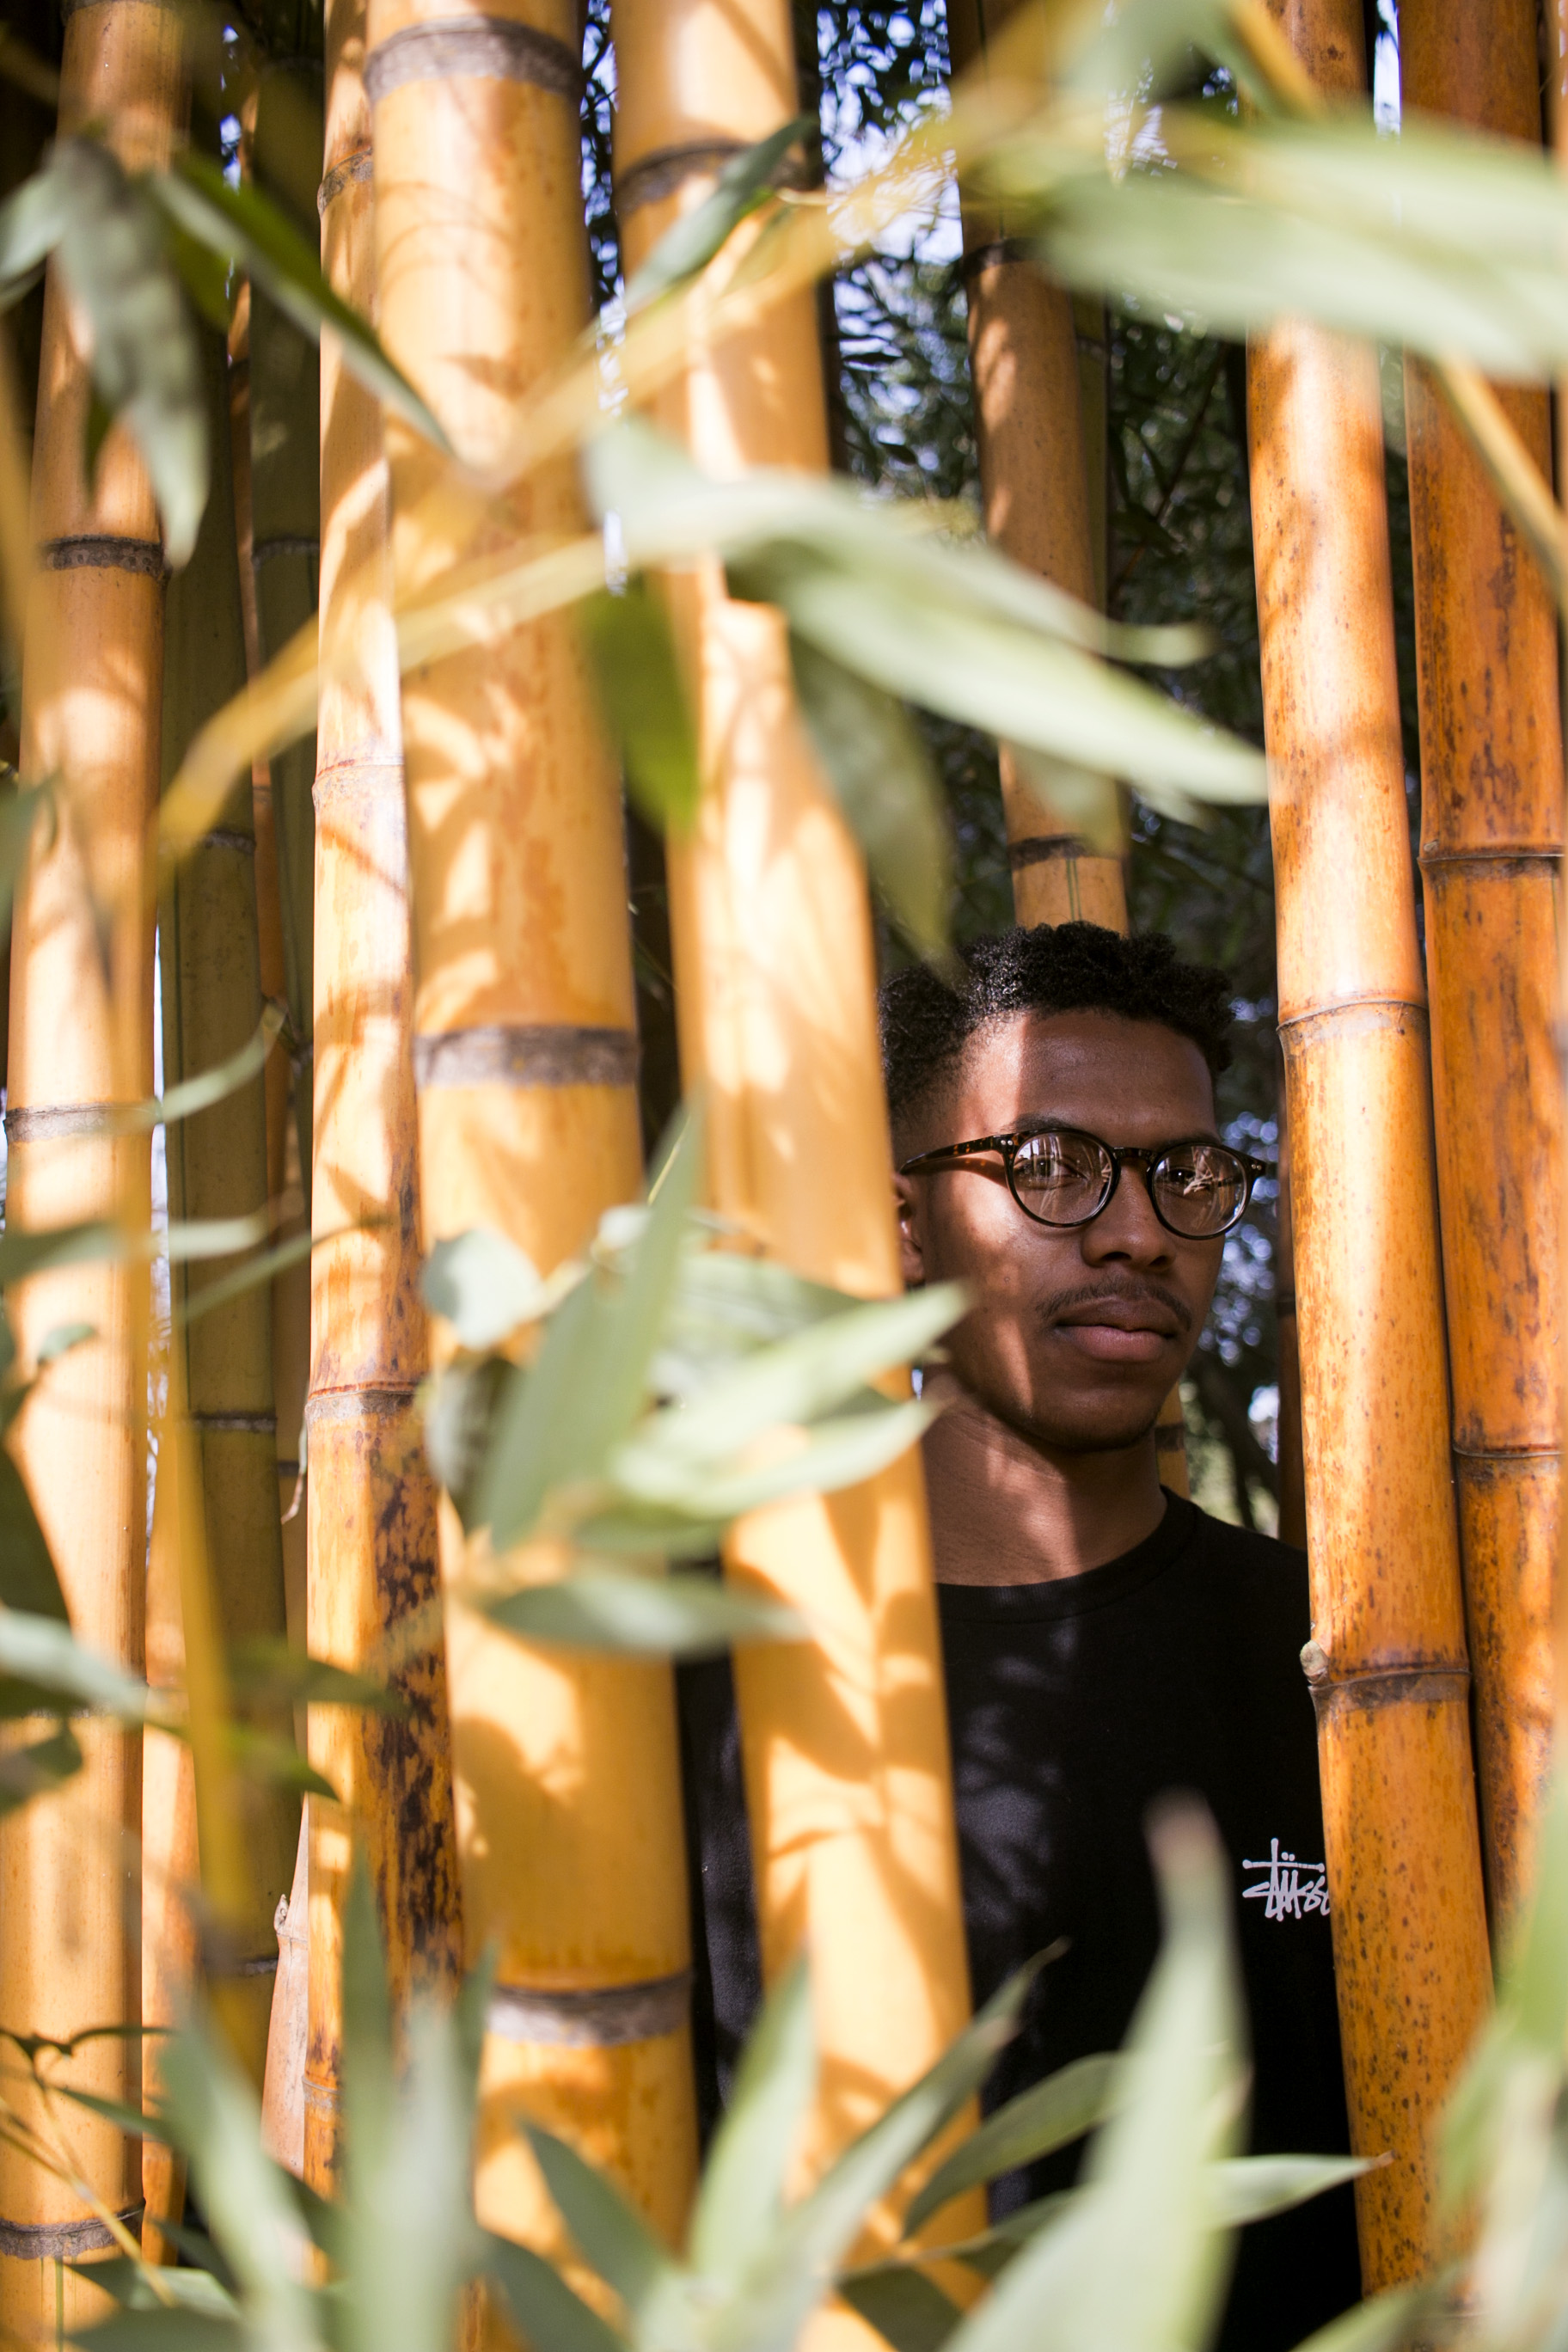 Sharod in the bamboo